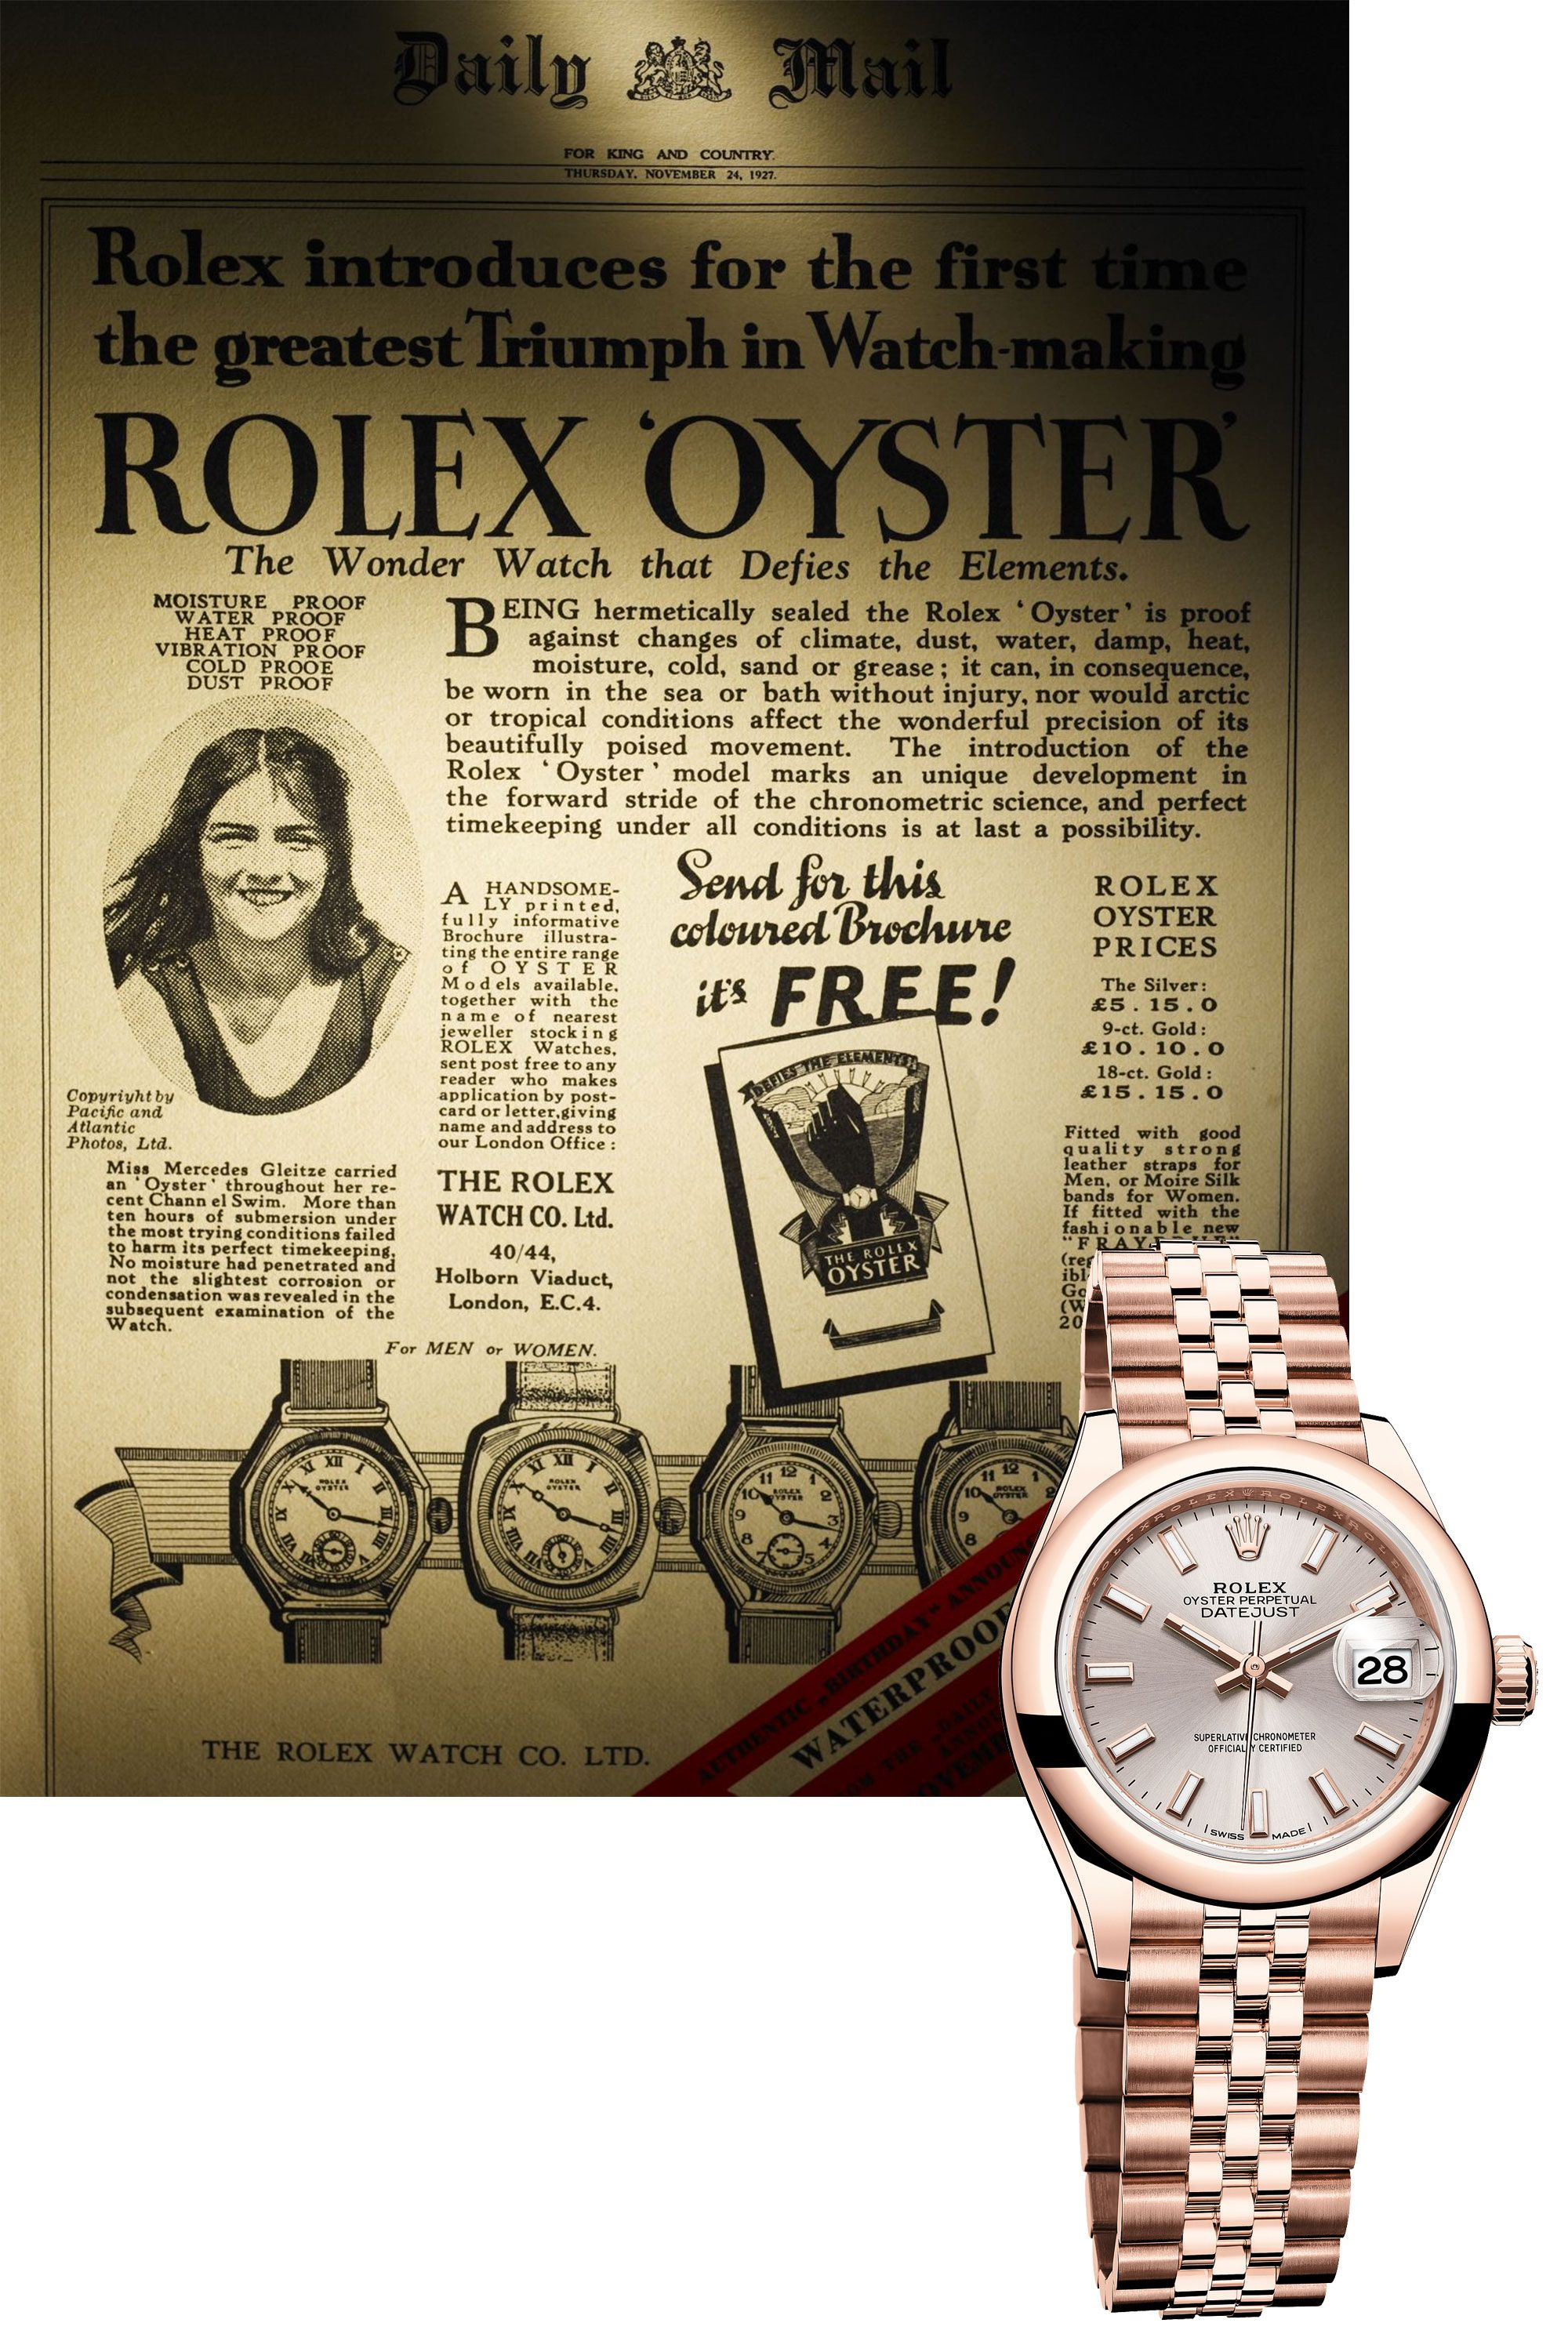 """<p>English Channel swimmer Mercedes Gleitze gave the water-resistant Rolex Oyster instant street cred—in fact, she introducedthe world to theidea of brand ambassadorship. Today's ladies Datejust retains much of the original's aesthetic, including the distinctive dial with hour markers made of 18Kgold (the current covetable version isavailableinEverosepink gold).</p><p><em data-redactor-tag=""""em"""" data-verified=""""redactor"""">Lady Datejust 28 in Everose, $25,650;</em><a href=""""https://www.rolex.com/watches/datejust/m279165-0003.html"""" target=""""_blank"""" data-tracking-id=""""recirc-text-link""""><em data-redactor-tag=""""em"""" data-verified=""""redactor"""">rolex.com</em></a></p>"""